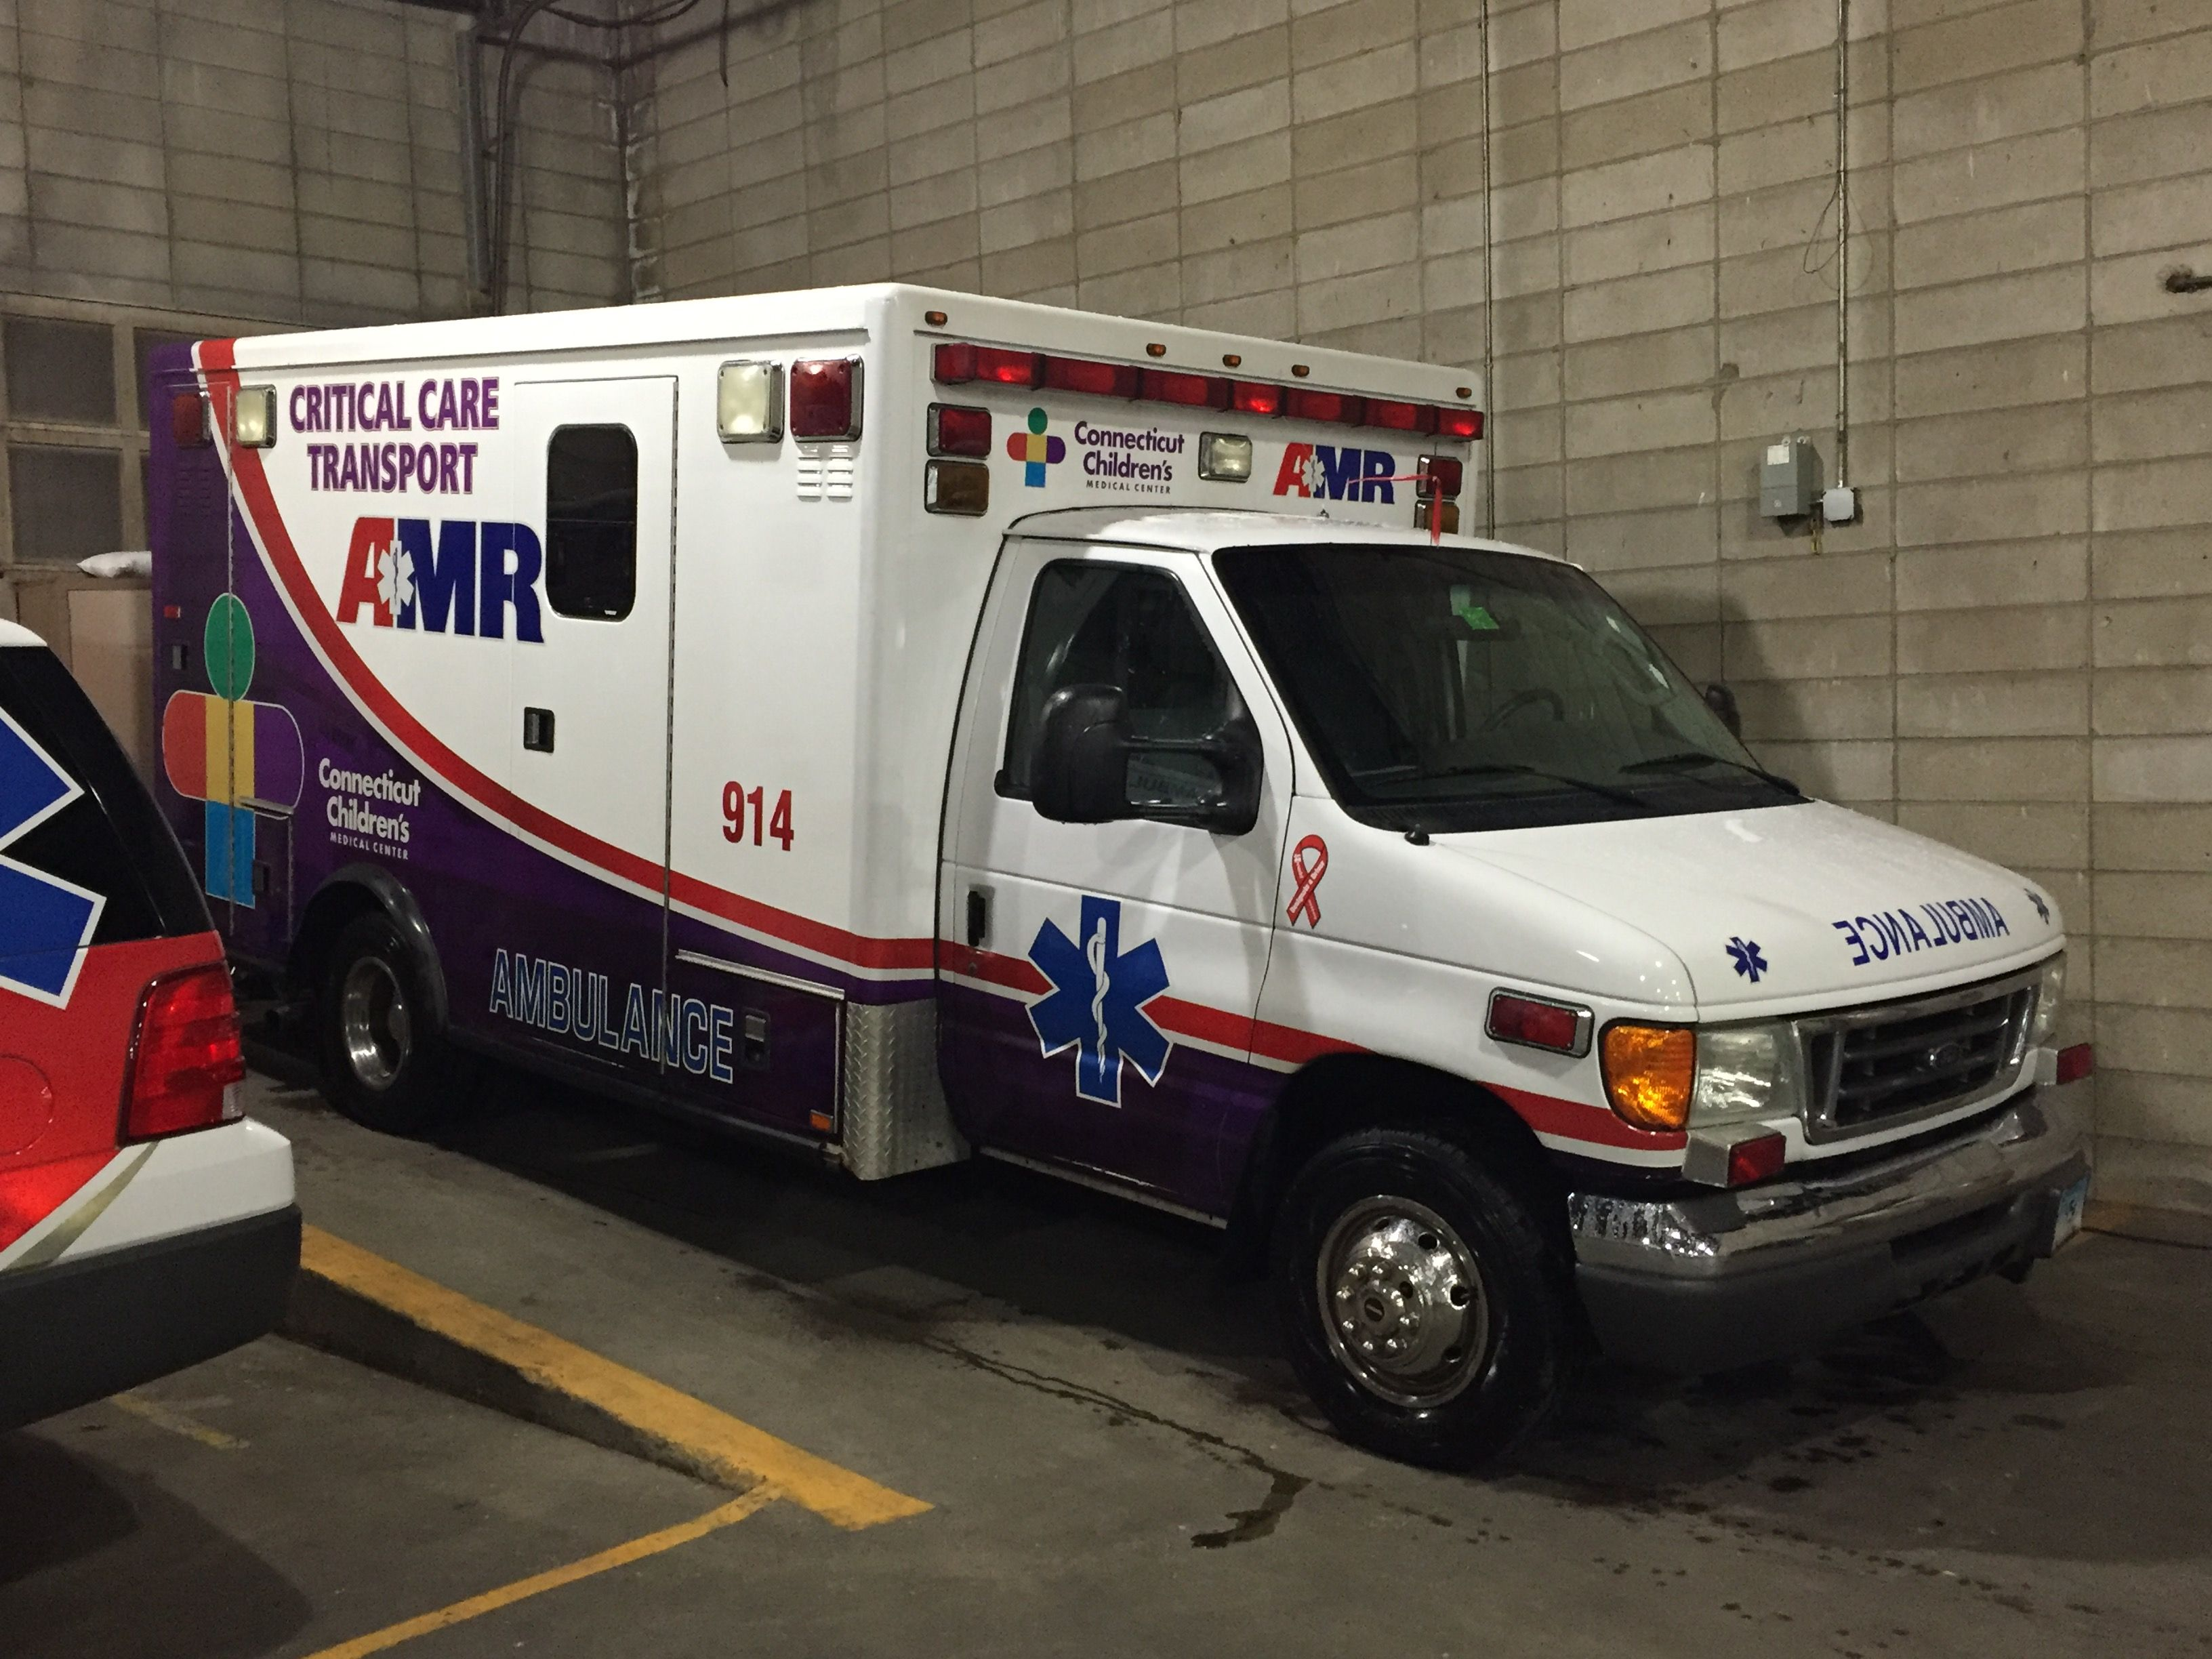 Emergency Response Restrooms And Showers For Disaster Relief Emergency Vehicles Ford Ambulance Emergency Response